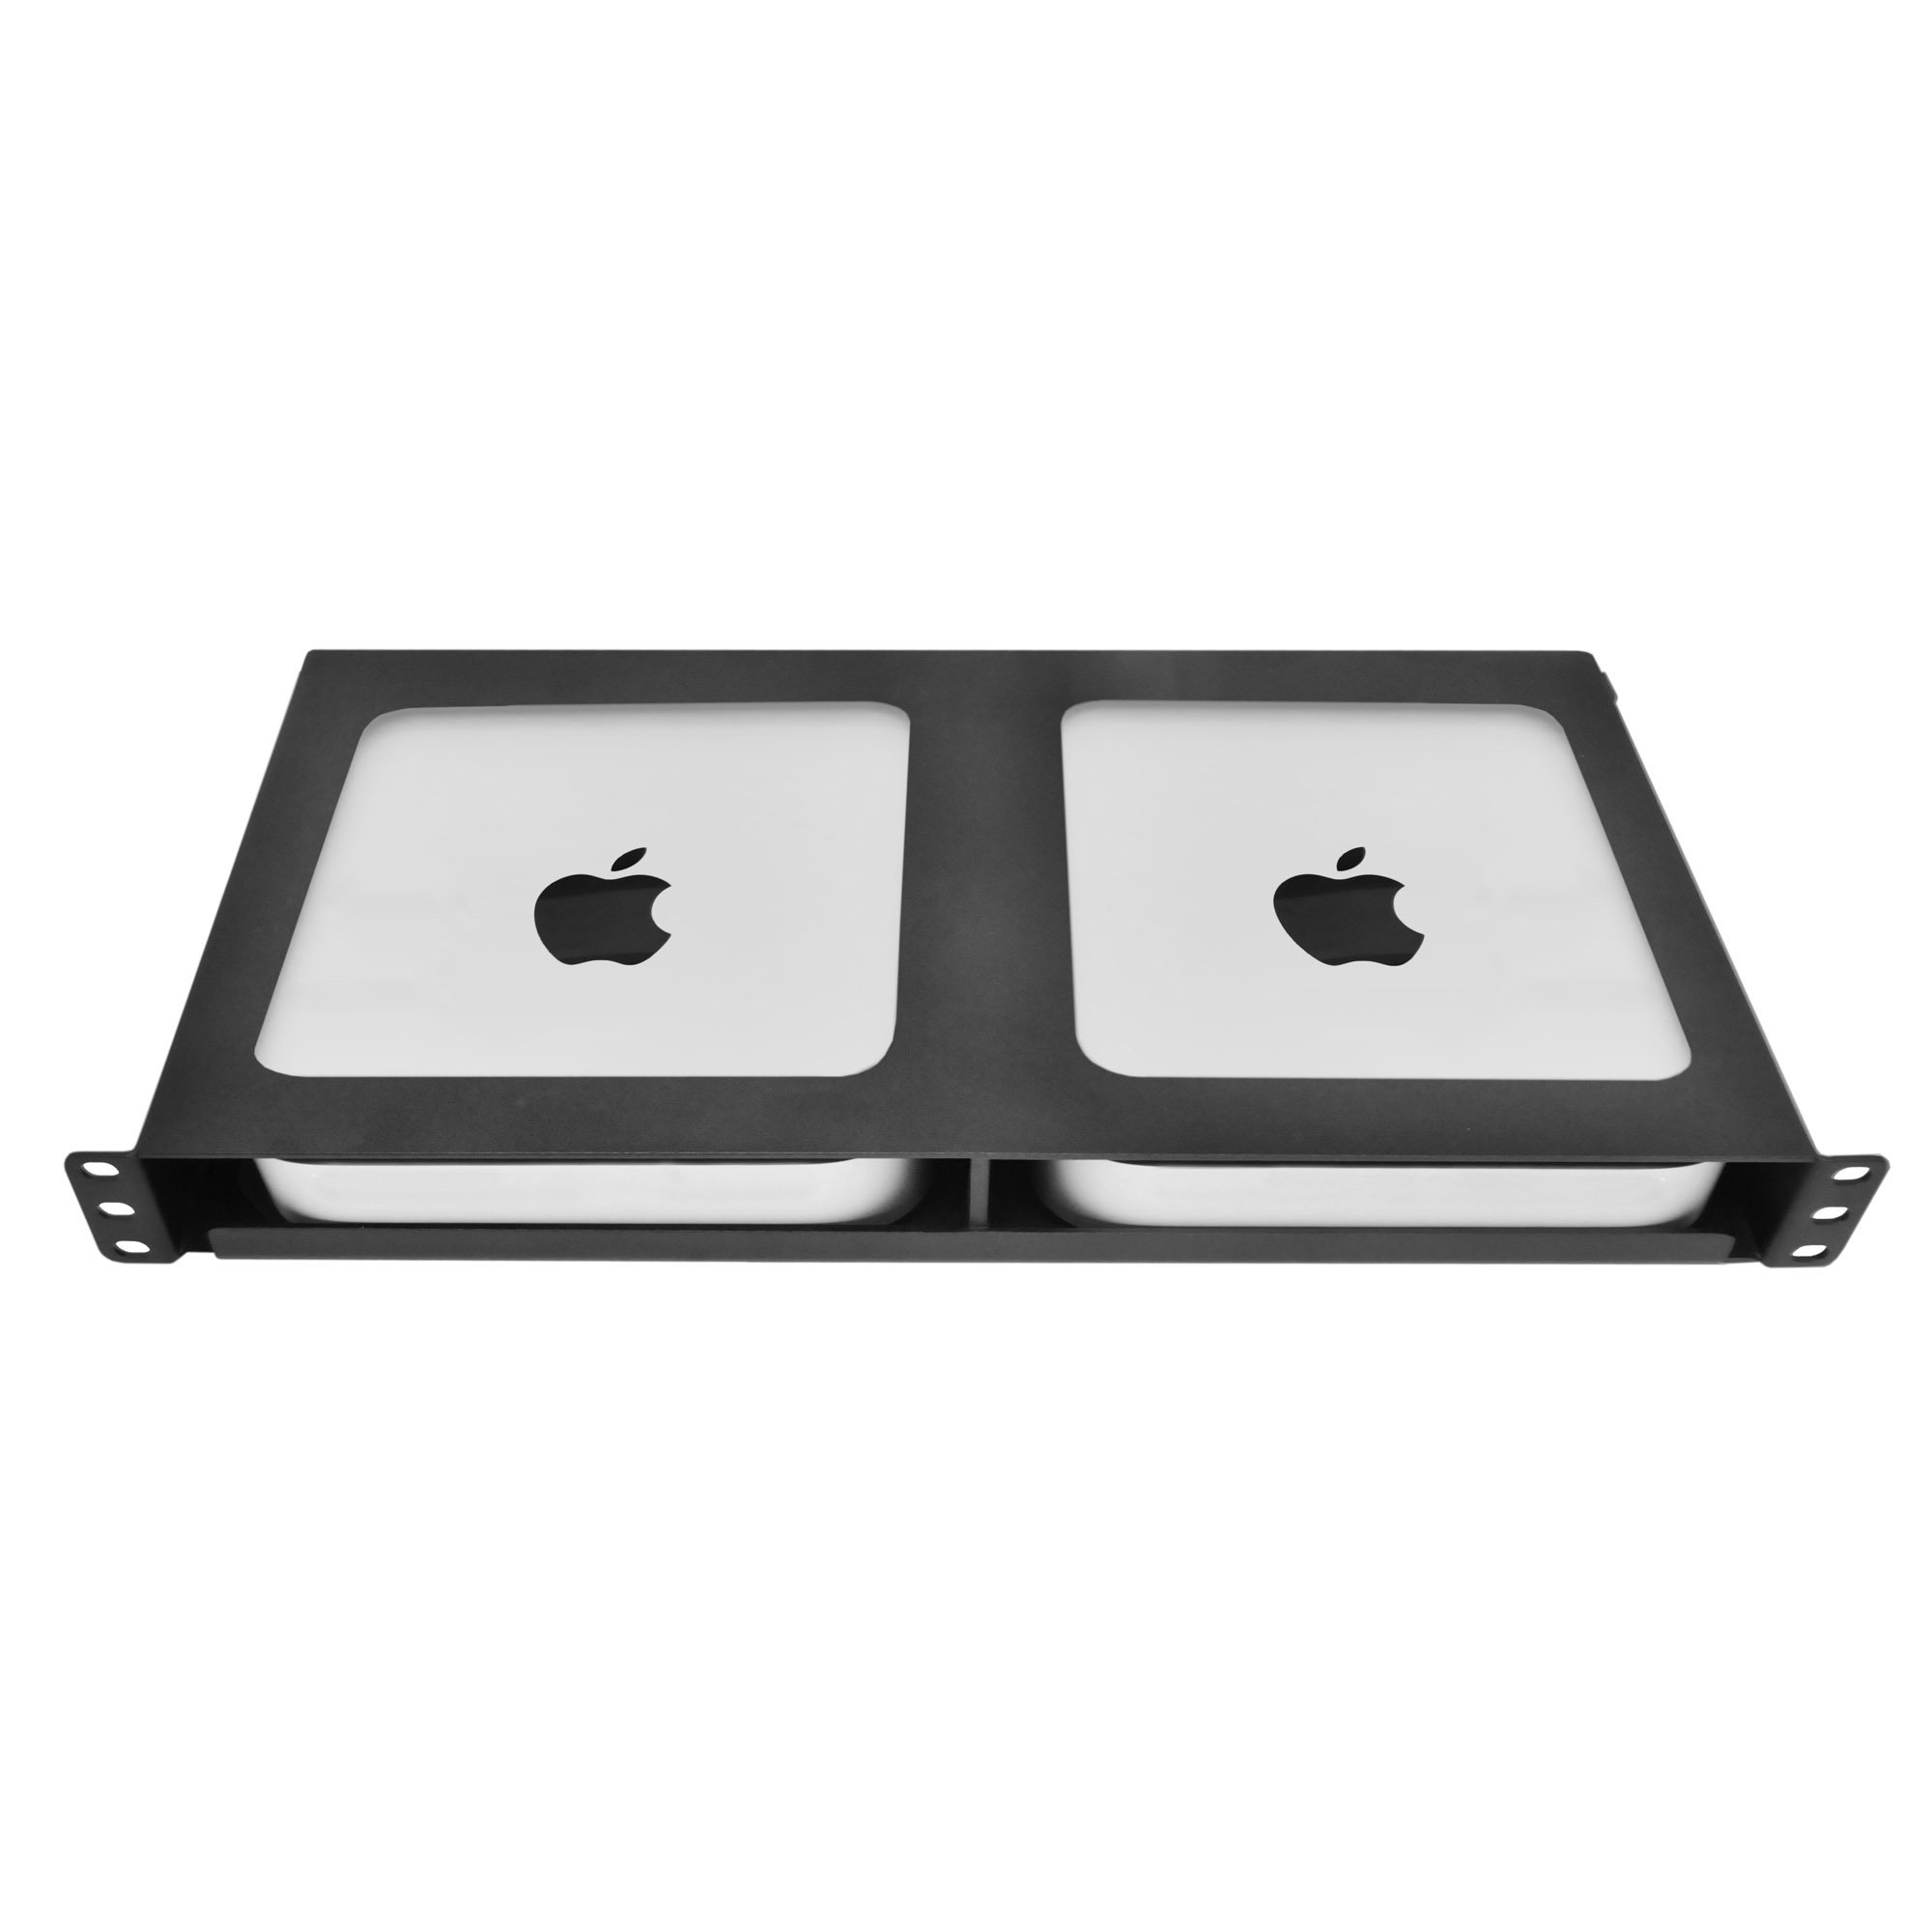 SecurityXtra Rackmini Anti-Theft Security Lock Enclosure for Mac Mini and Server by SecurityXtra